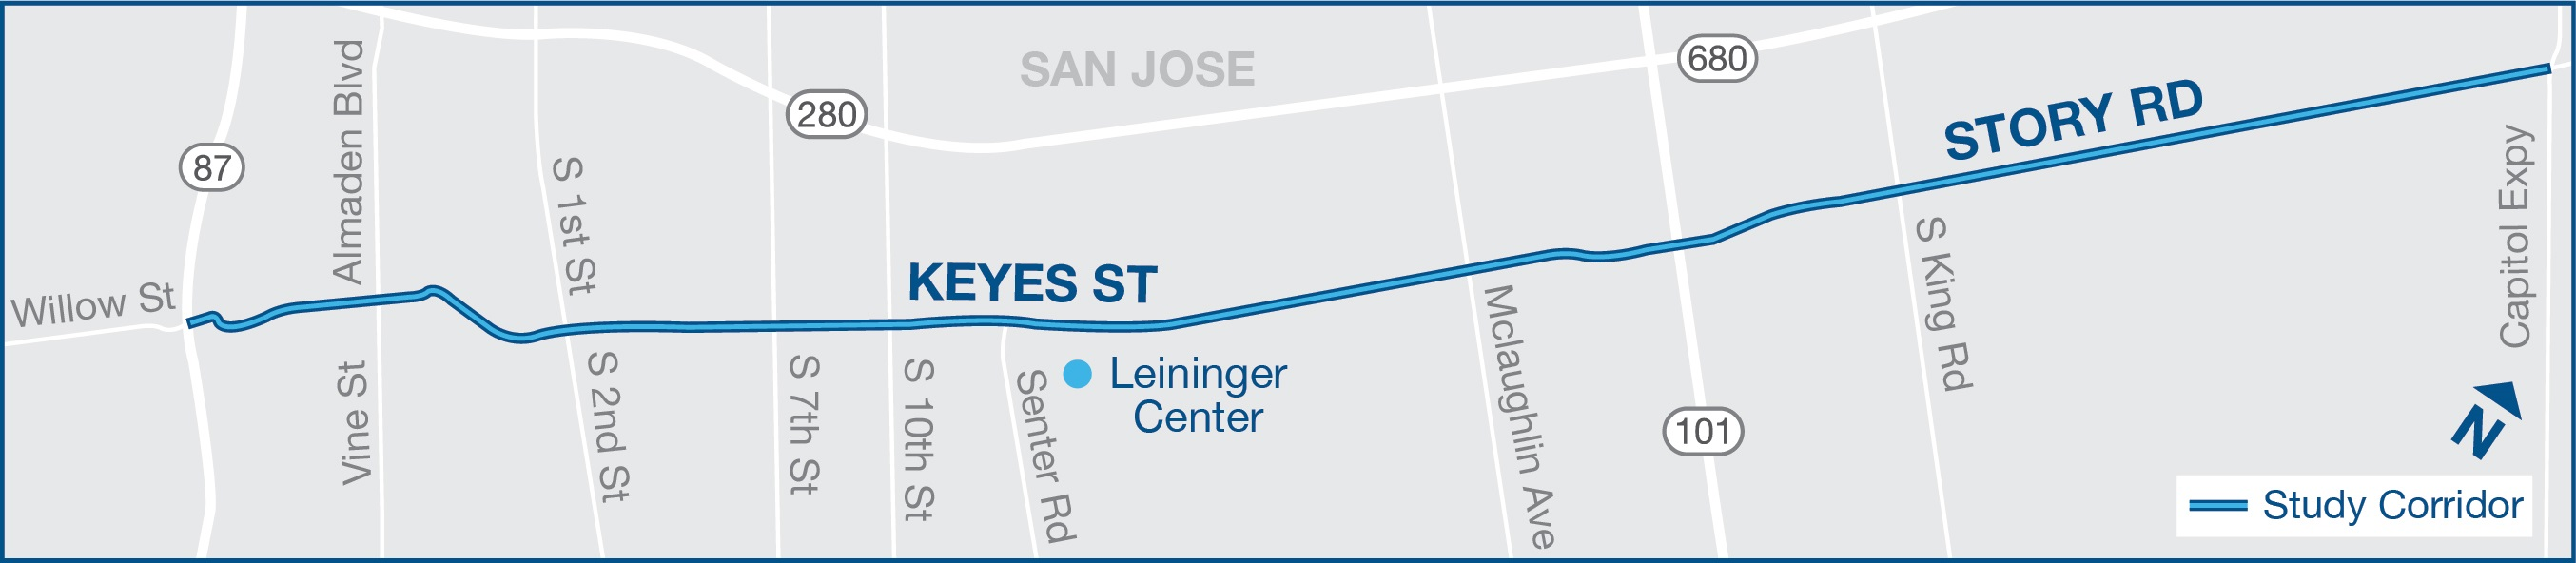 Story-Keyes Complete Street Study, Map